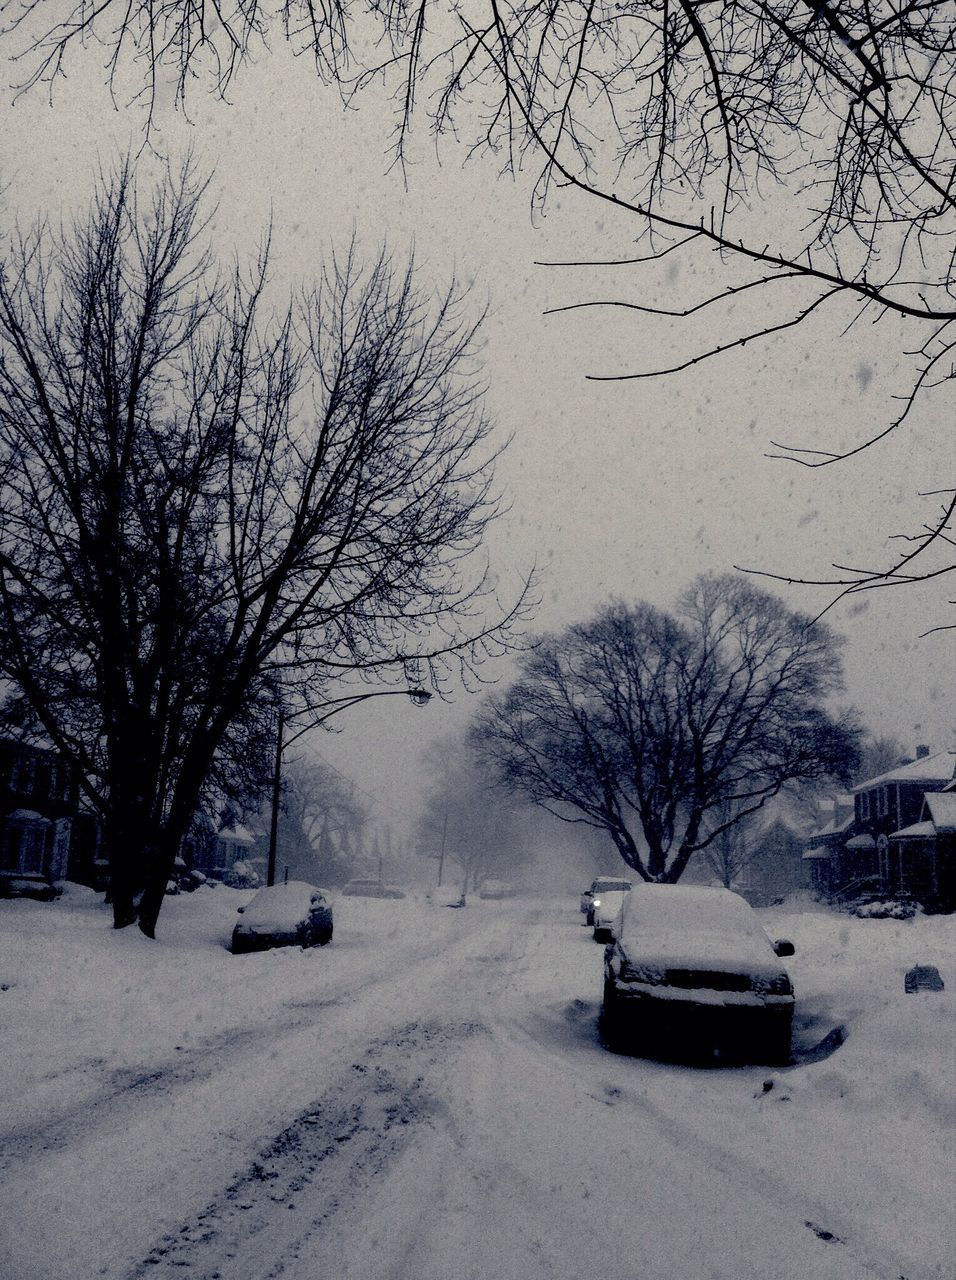 snow, winter, cold temperature, bare tree, weather, tree, car, nature, outdoors, street, transportation, branch, land vehicle, no people, road, beauty in nature, day, landscape, built structure, snowing, architecture, building exterior, city, sky, bleak